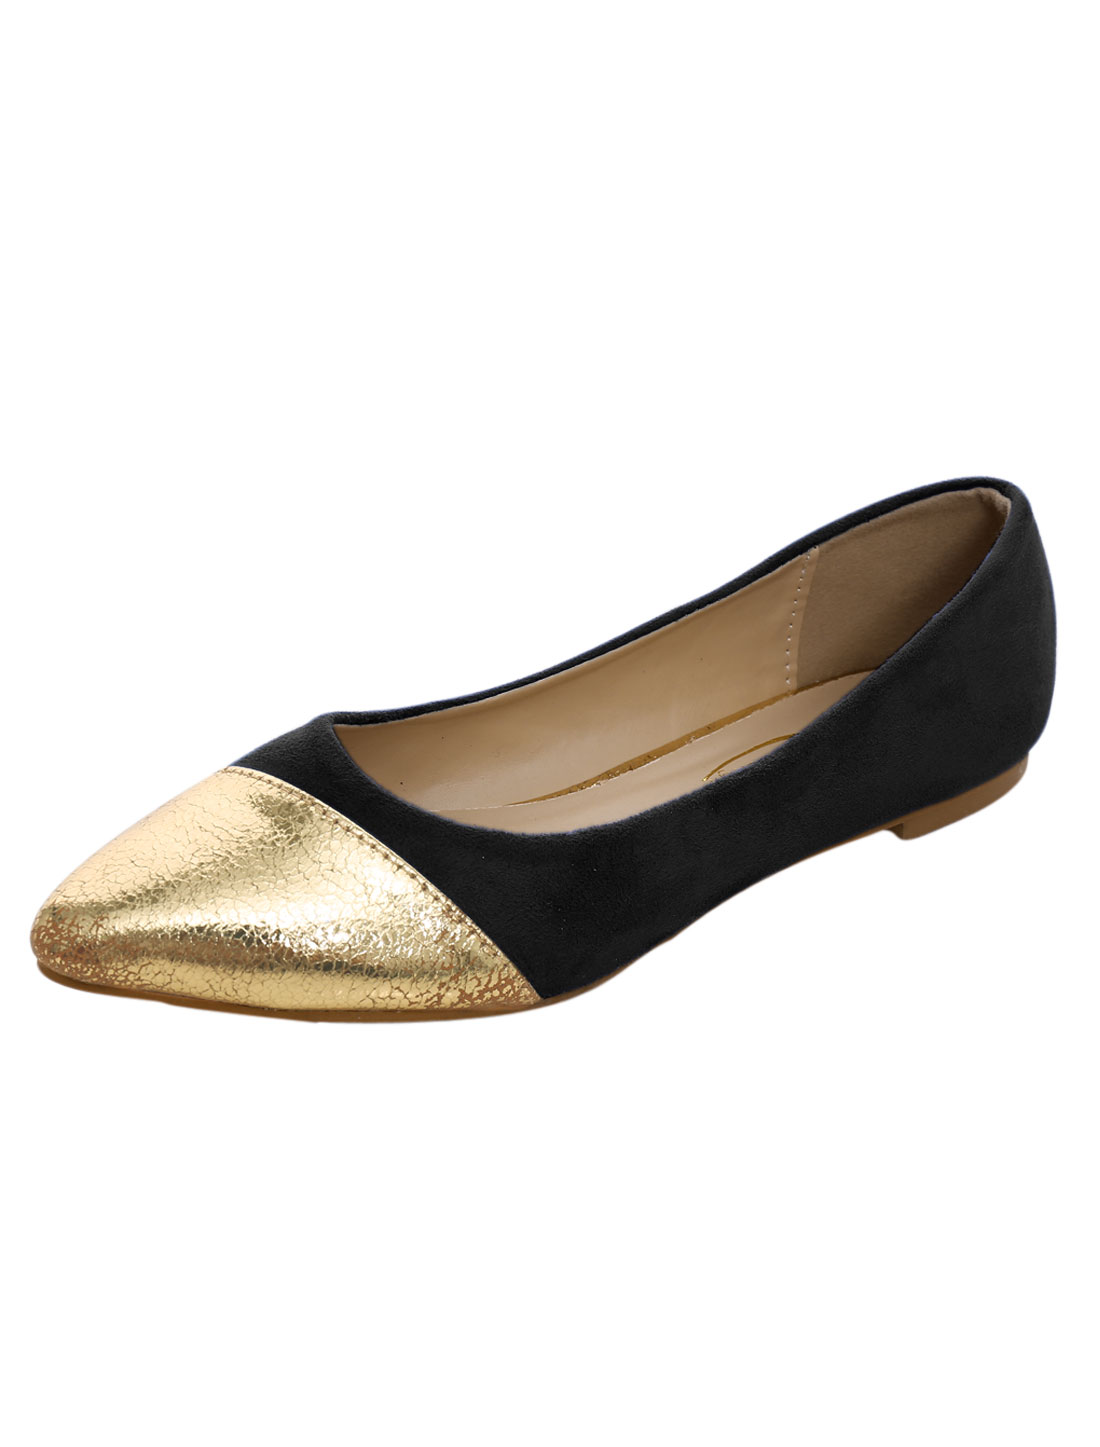 Women Color Block Panel Textured Outsole Casual Flats Shoes Solid Black US 10.5